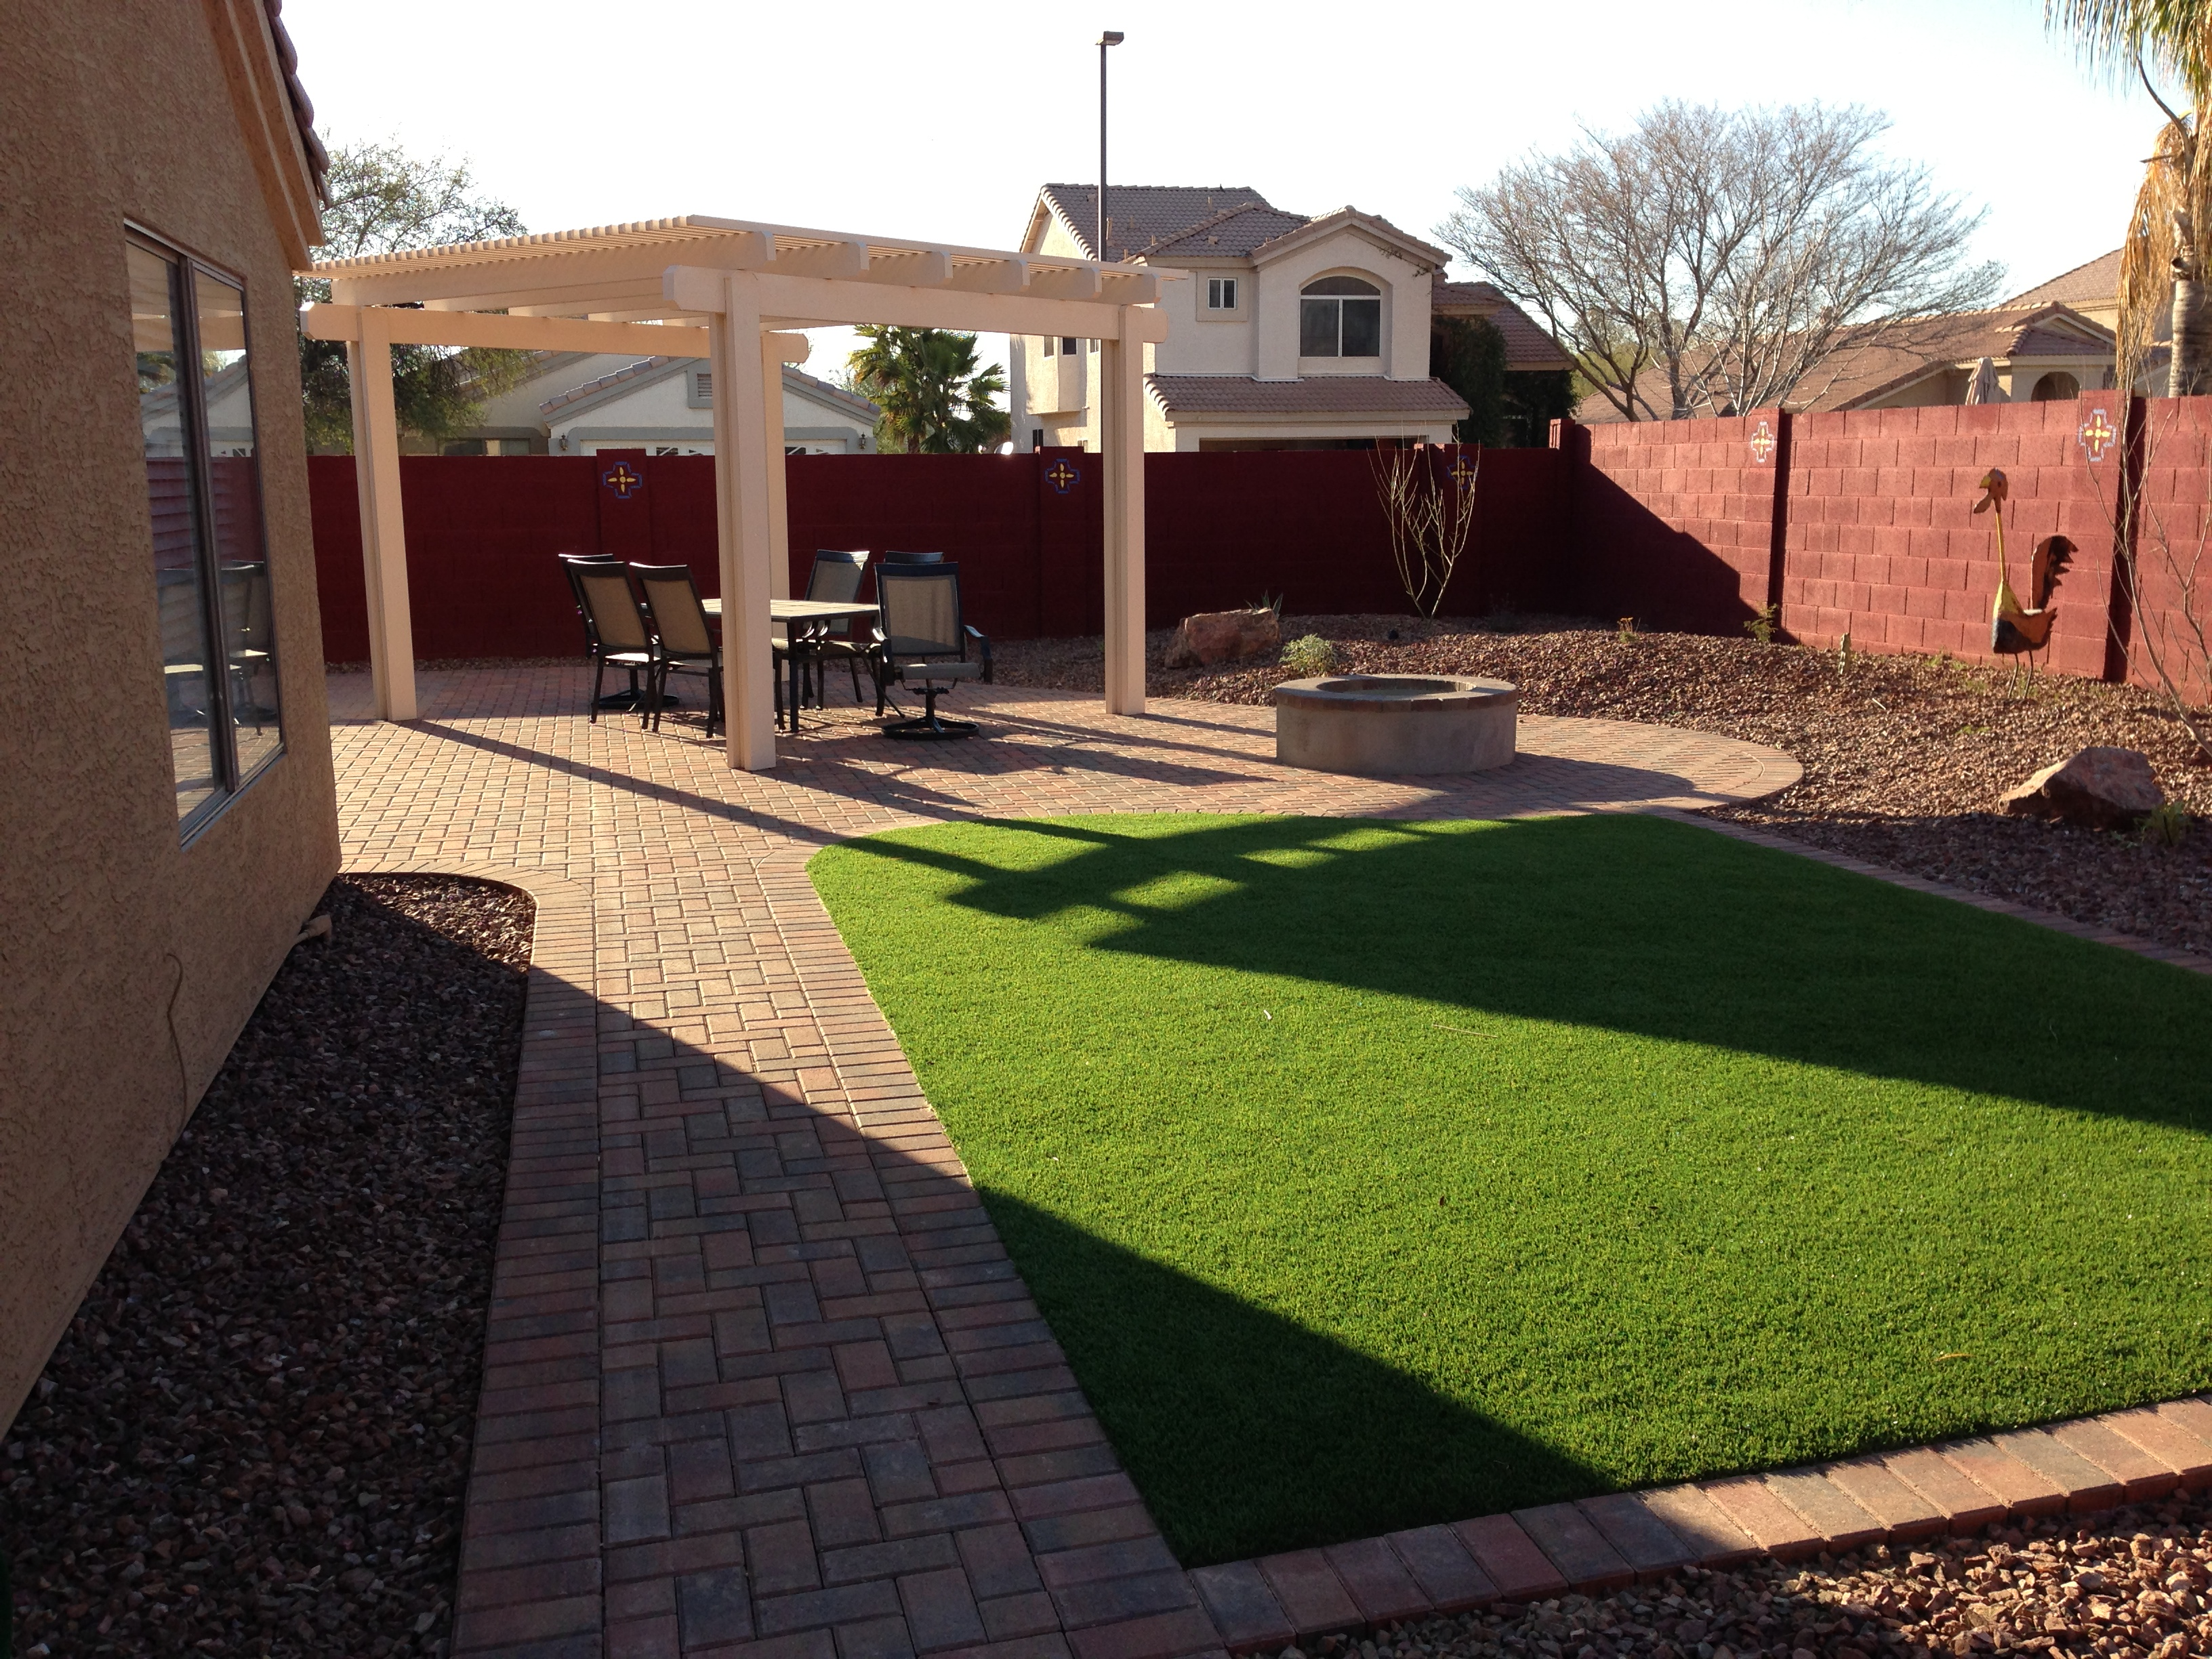 Phoenix area backyard landscape design ideas and news for Backyard landscape design ideas